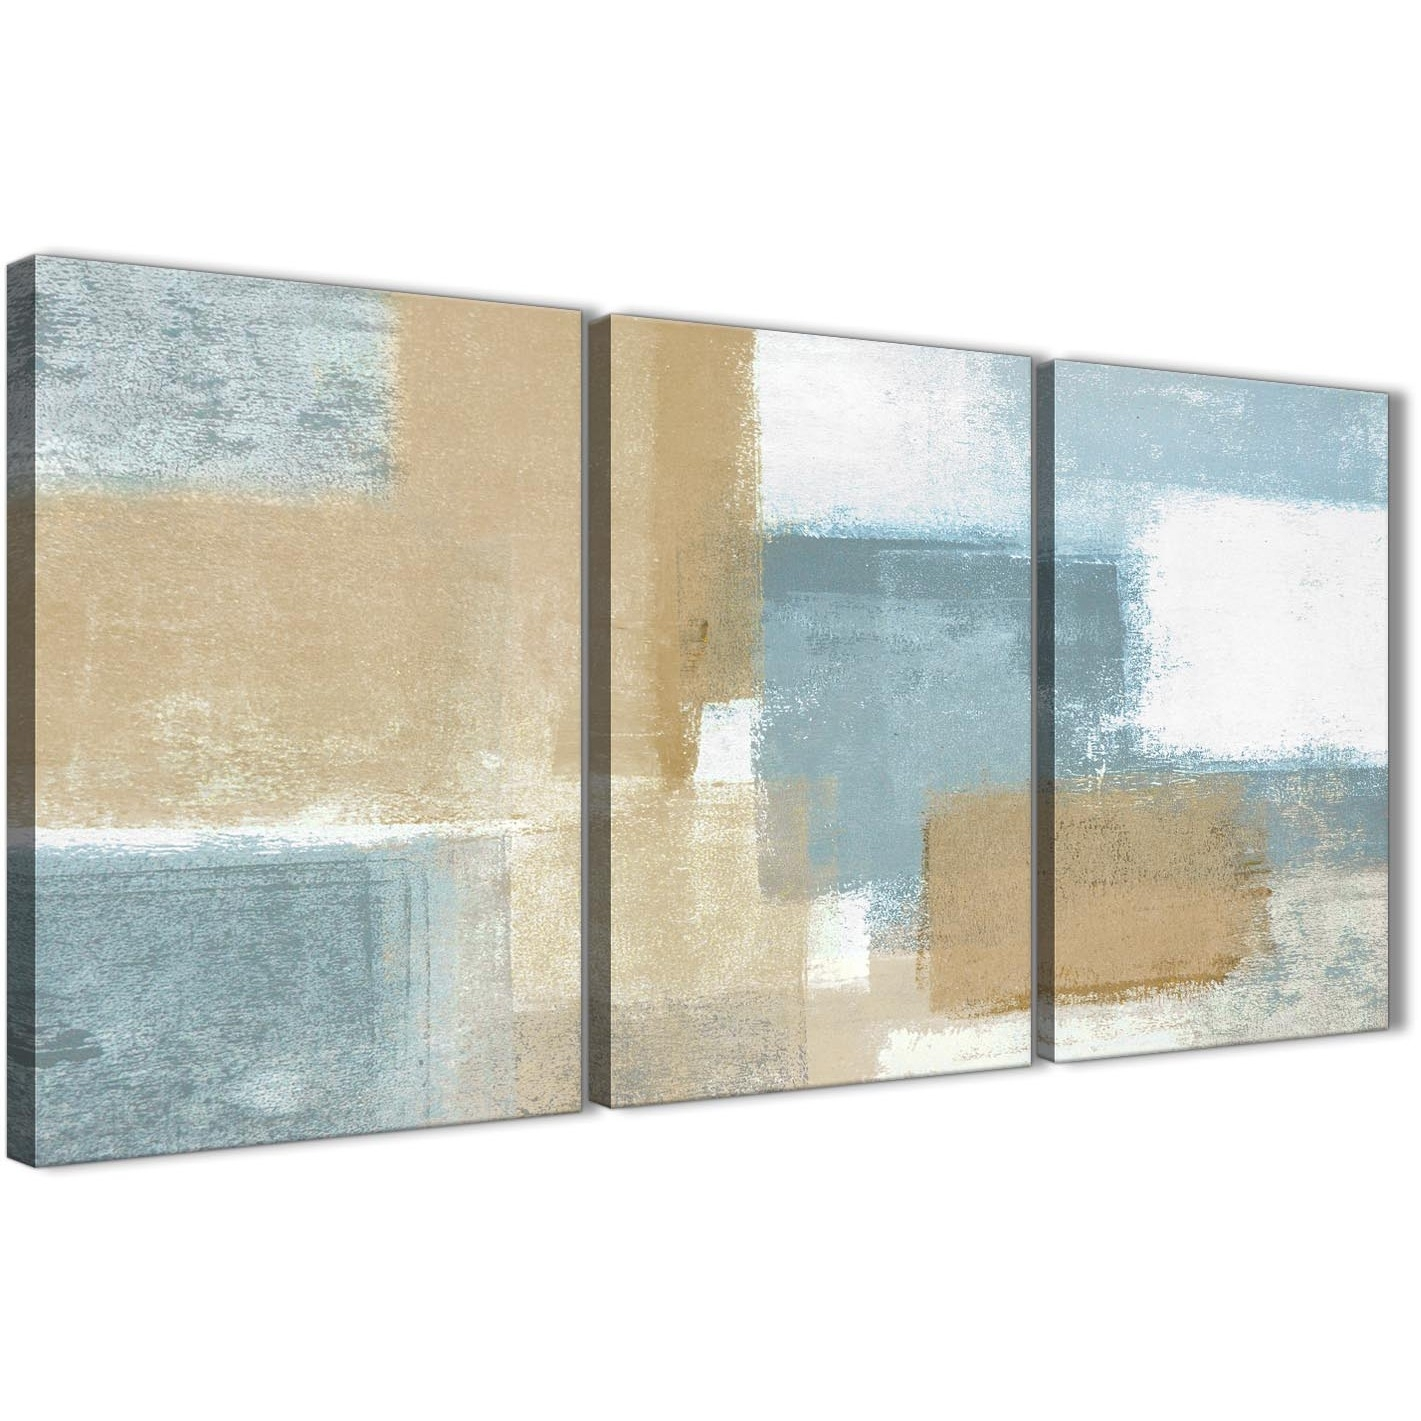 Blue Beige Brown Abstract Painting Canvas Wall Art Print – Multi With Newest Blue And Brown Canvas Wall Art (View 15 of 15)